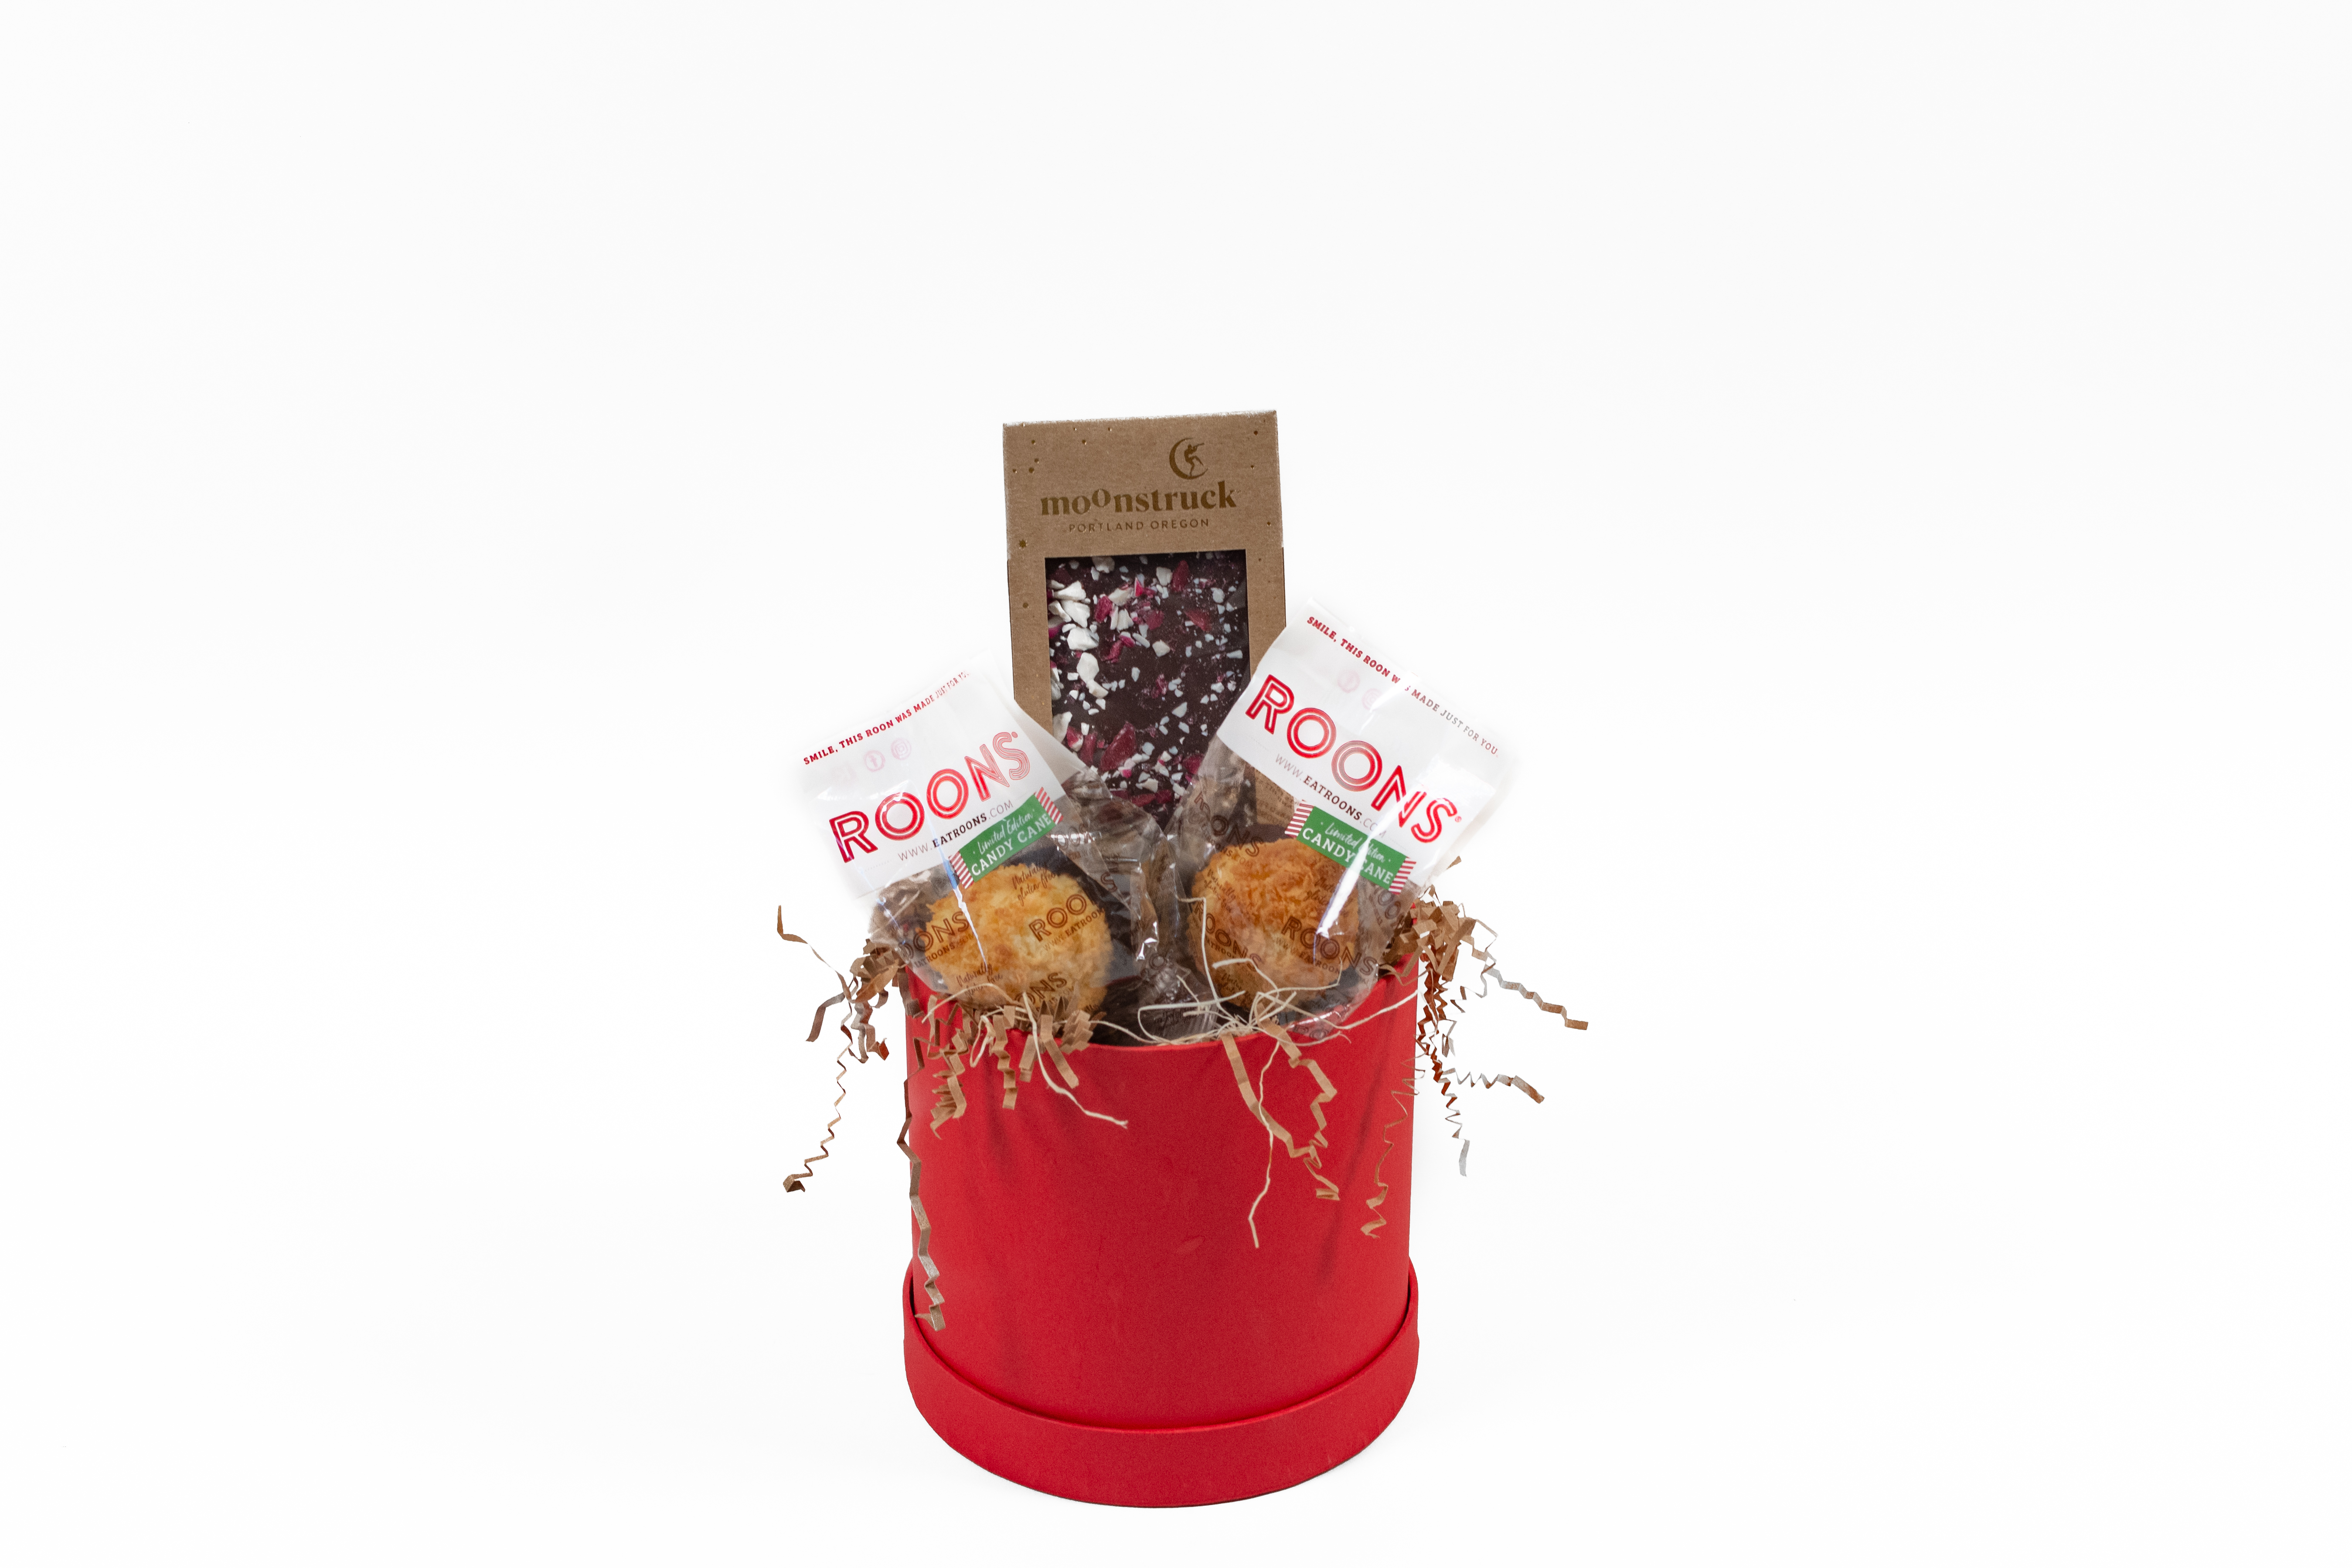 Roons gift basket. Staged food photography